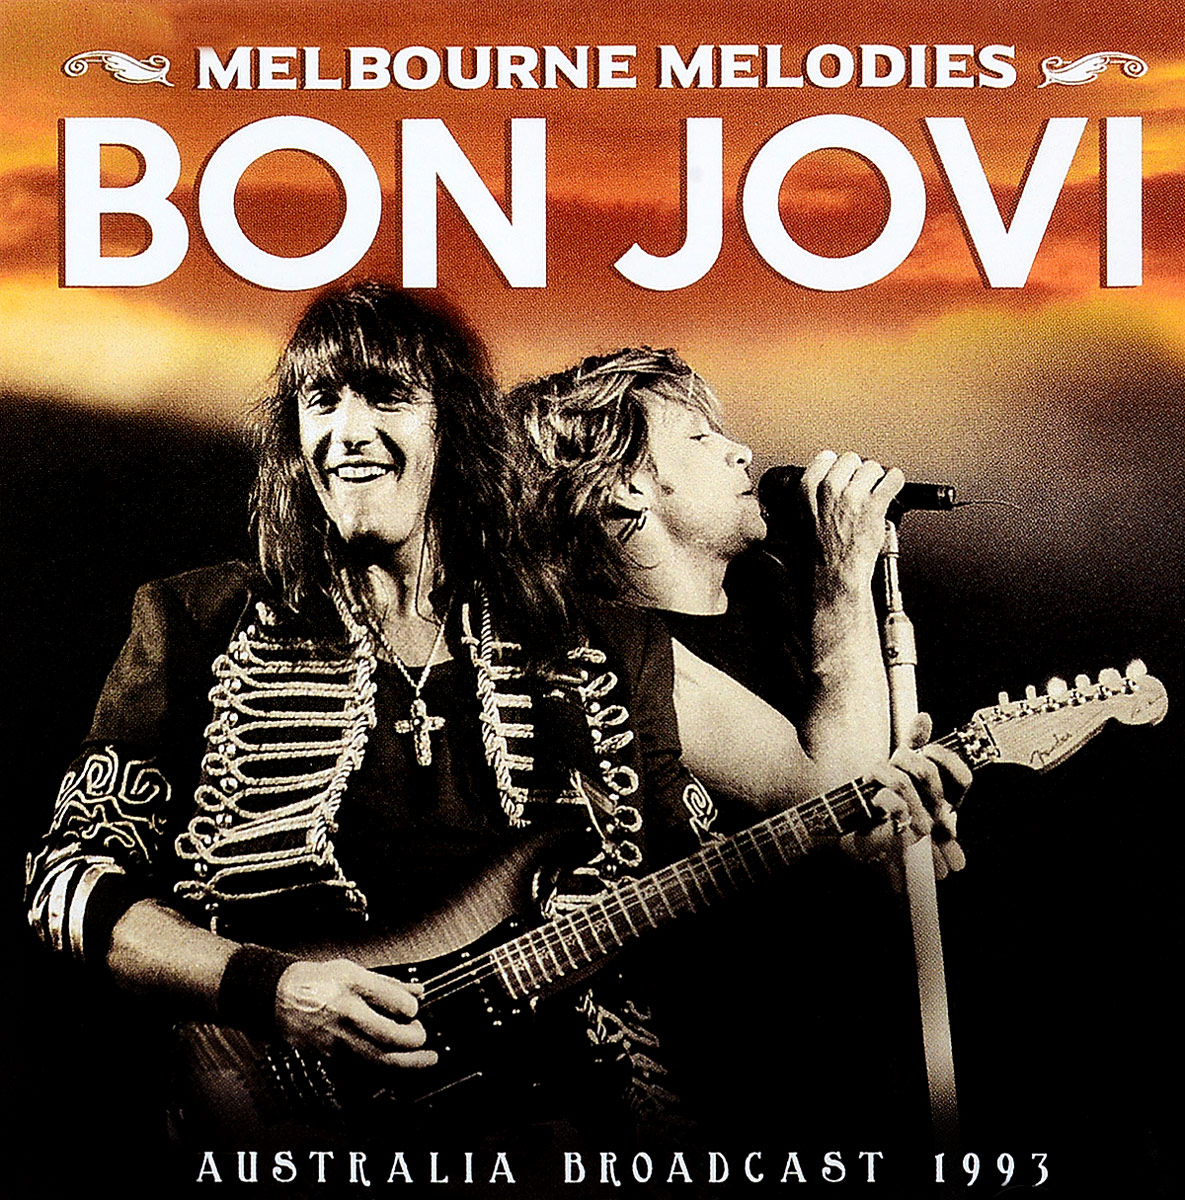 Джон Бон Джови Bon Jovi. Melbourne Melodies andy grammer melbourne